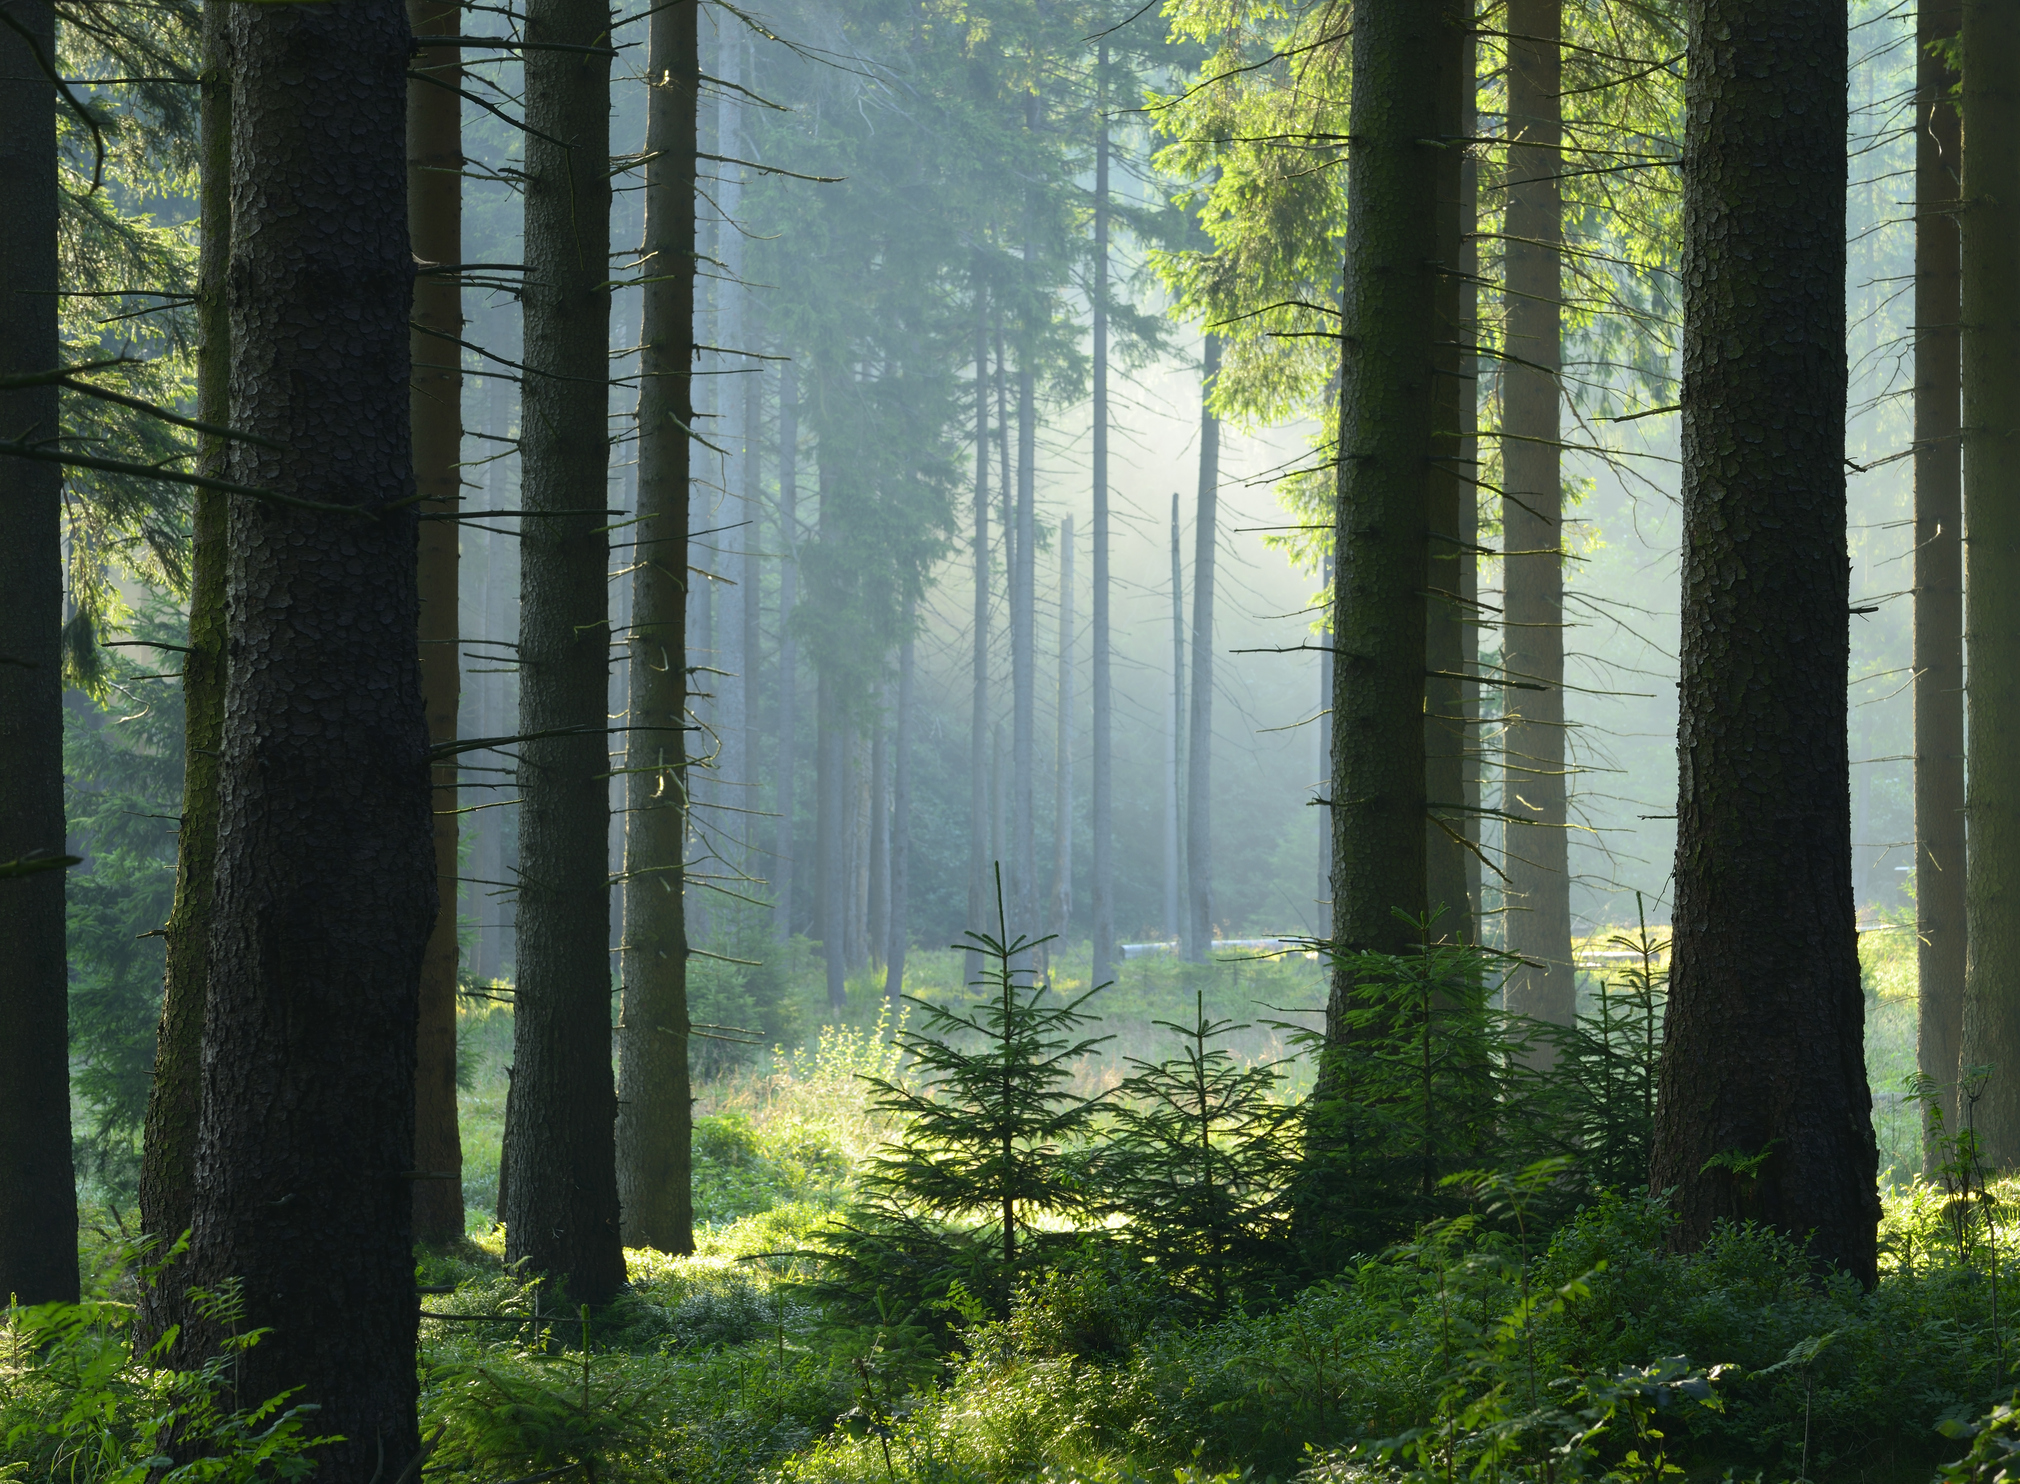 Sunlight seeps into a spruce forest.